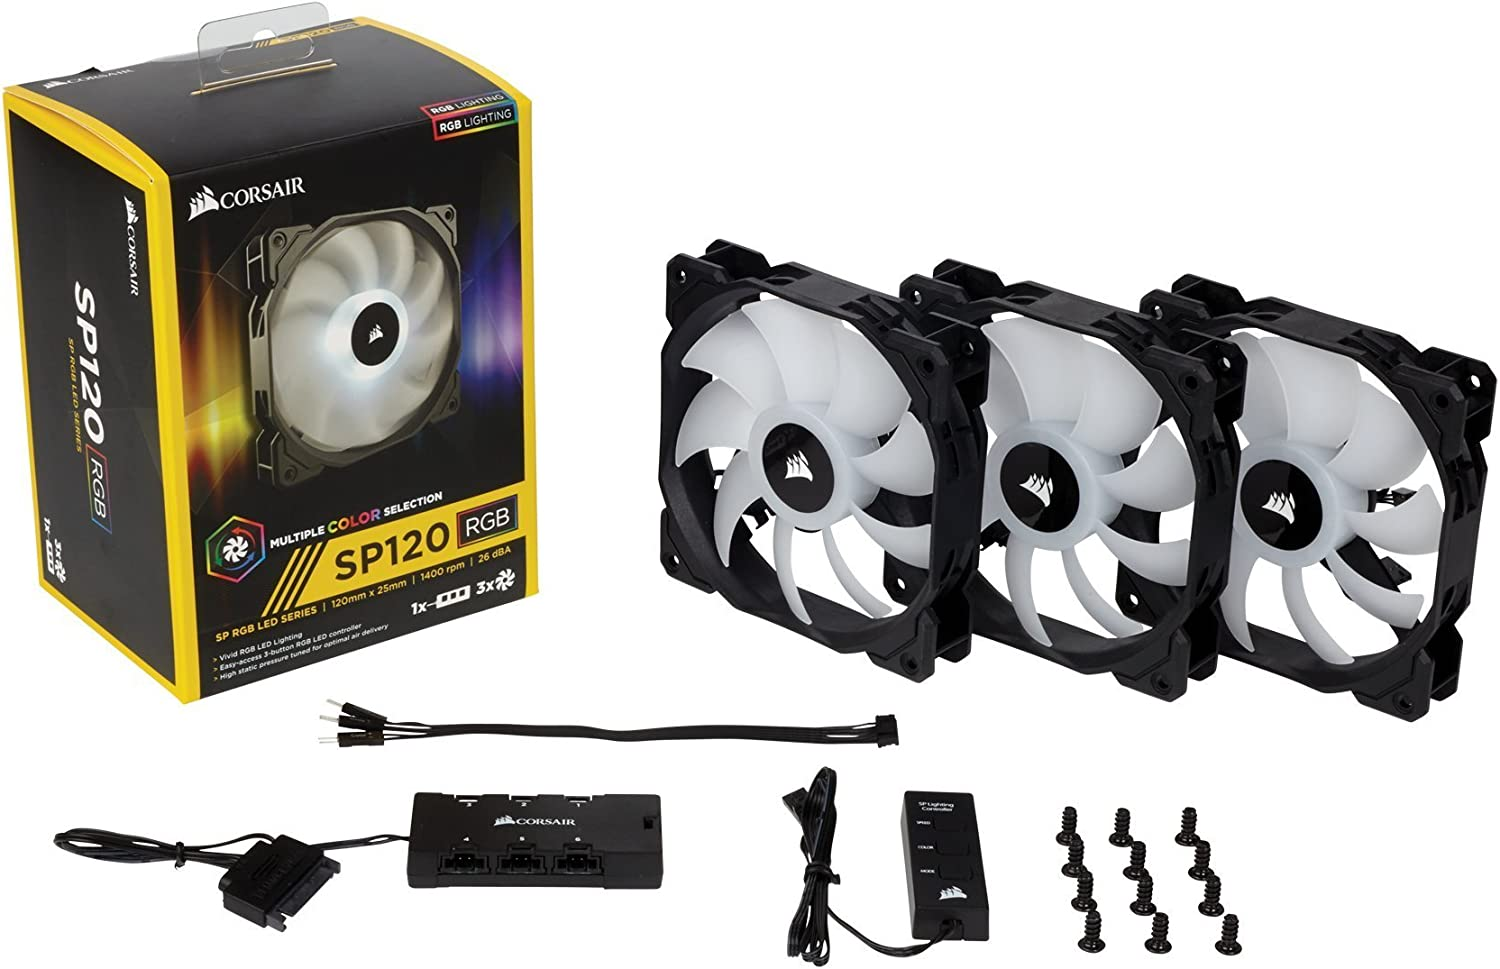 120mm High Performance RGB LED Three Fans with Controller SP120 RGB LED Corsair CO-9050061-WW SP Series Renewed